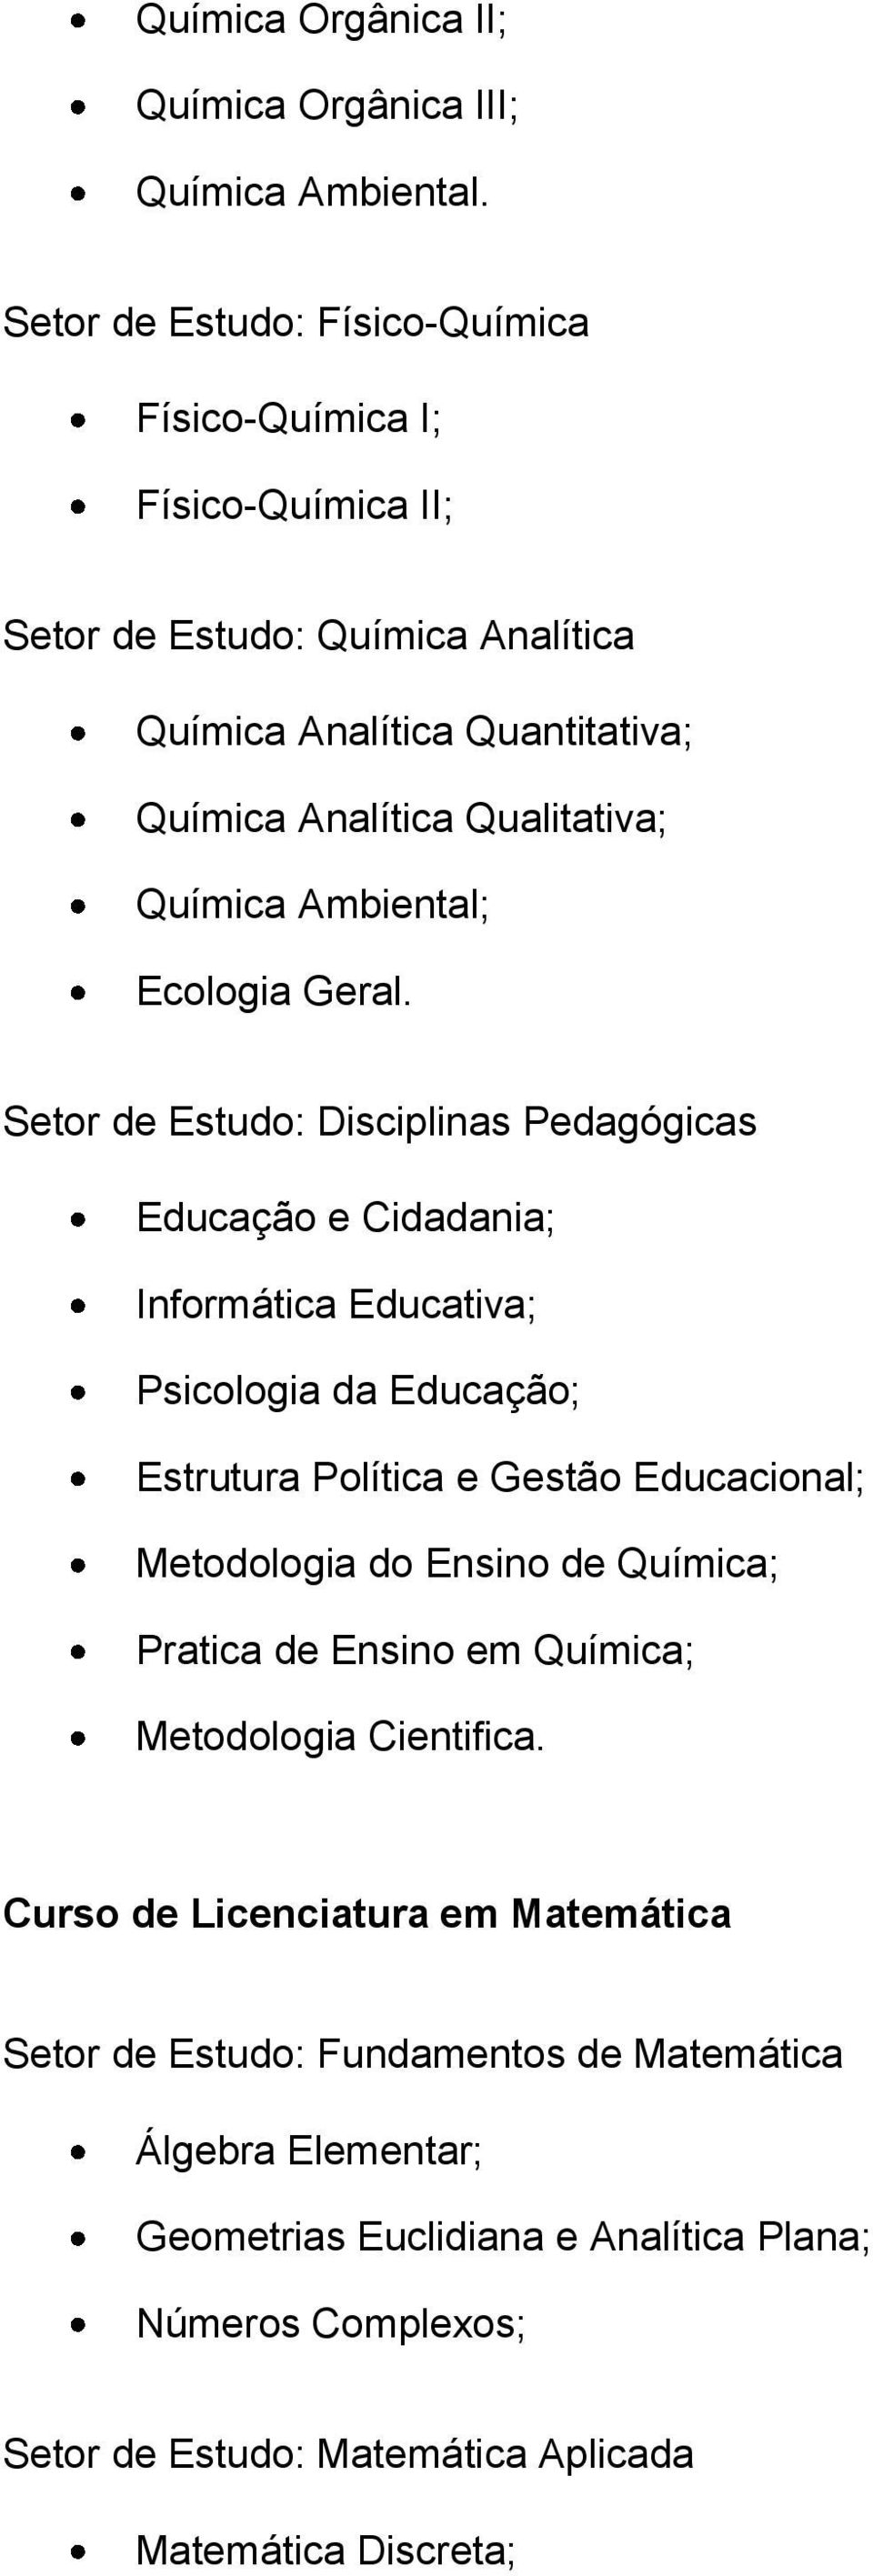 Ambiental; Ecologia Geral.